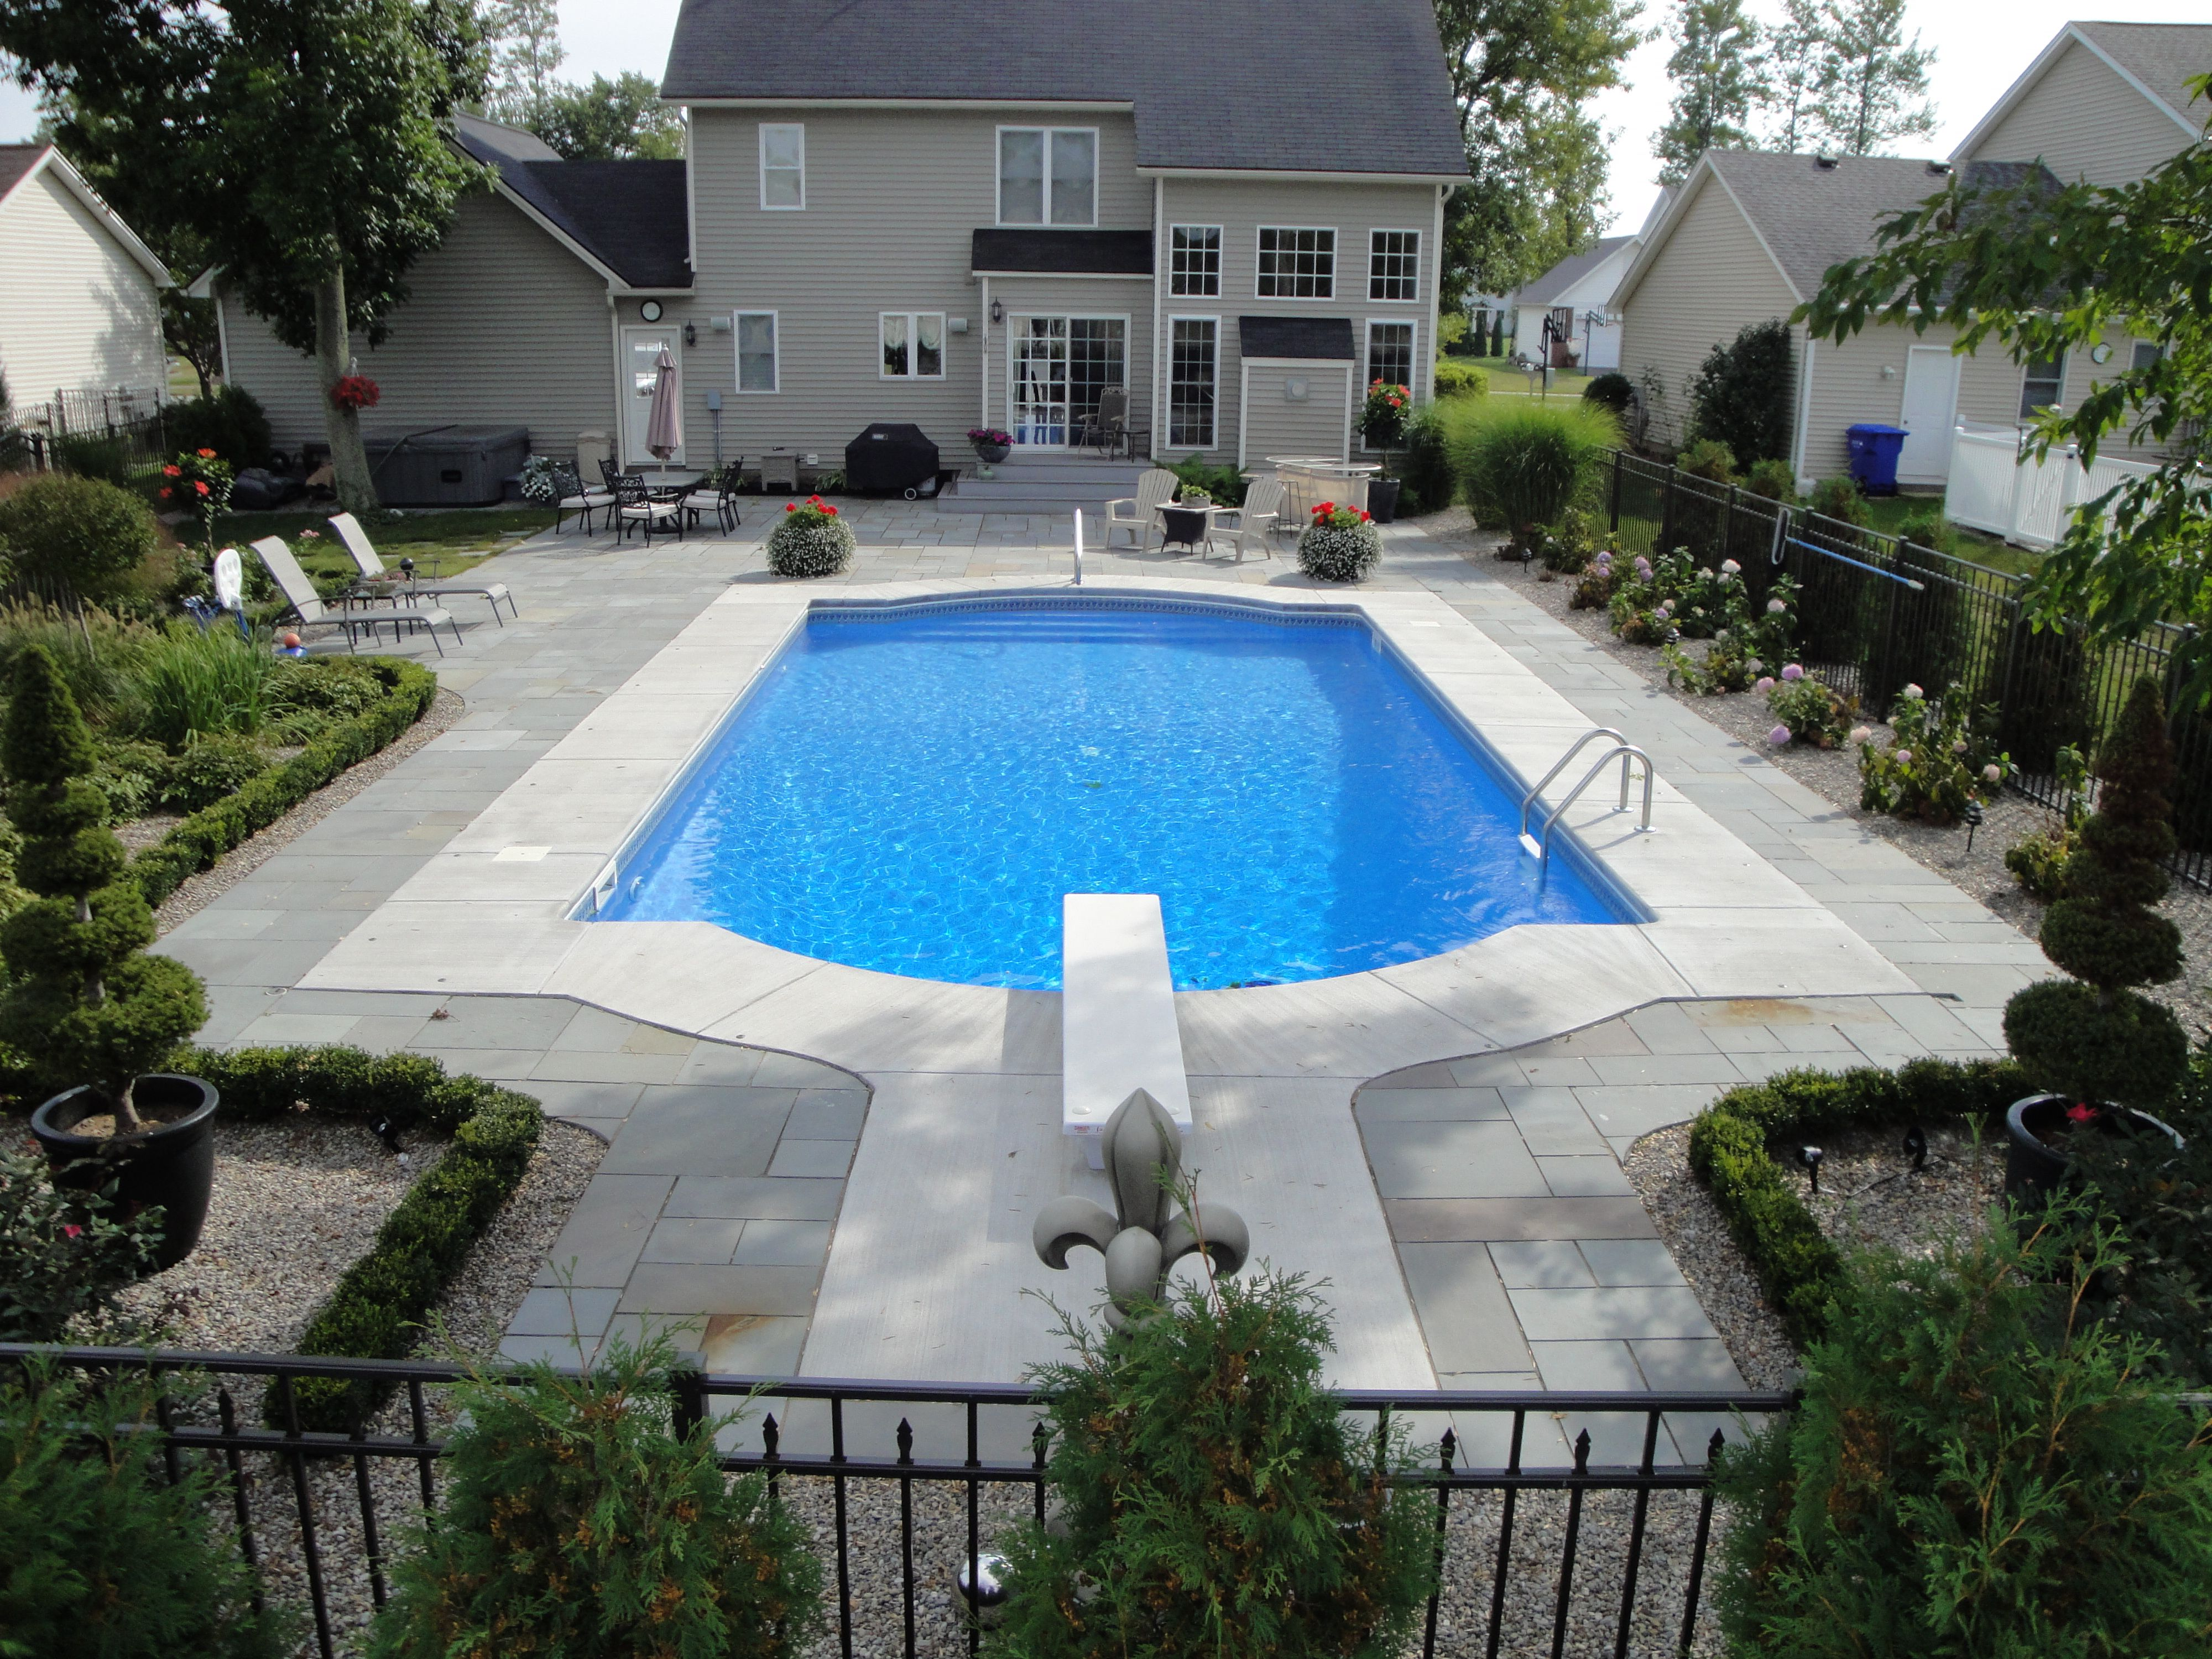 For The Last 30 Years We Ve Been Turning Dreams Into Reality For Thousands Of Imaginative Homeowne Swimming Pool House Pool Landscaping Swimming Pools Backyard